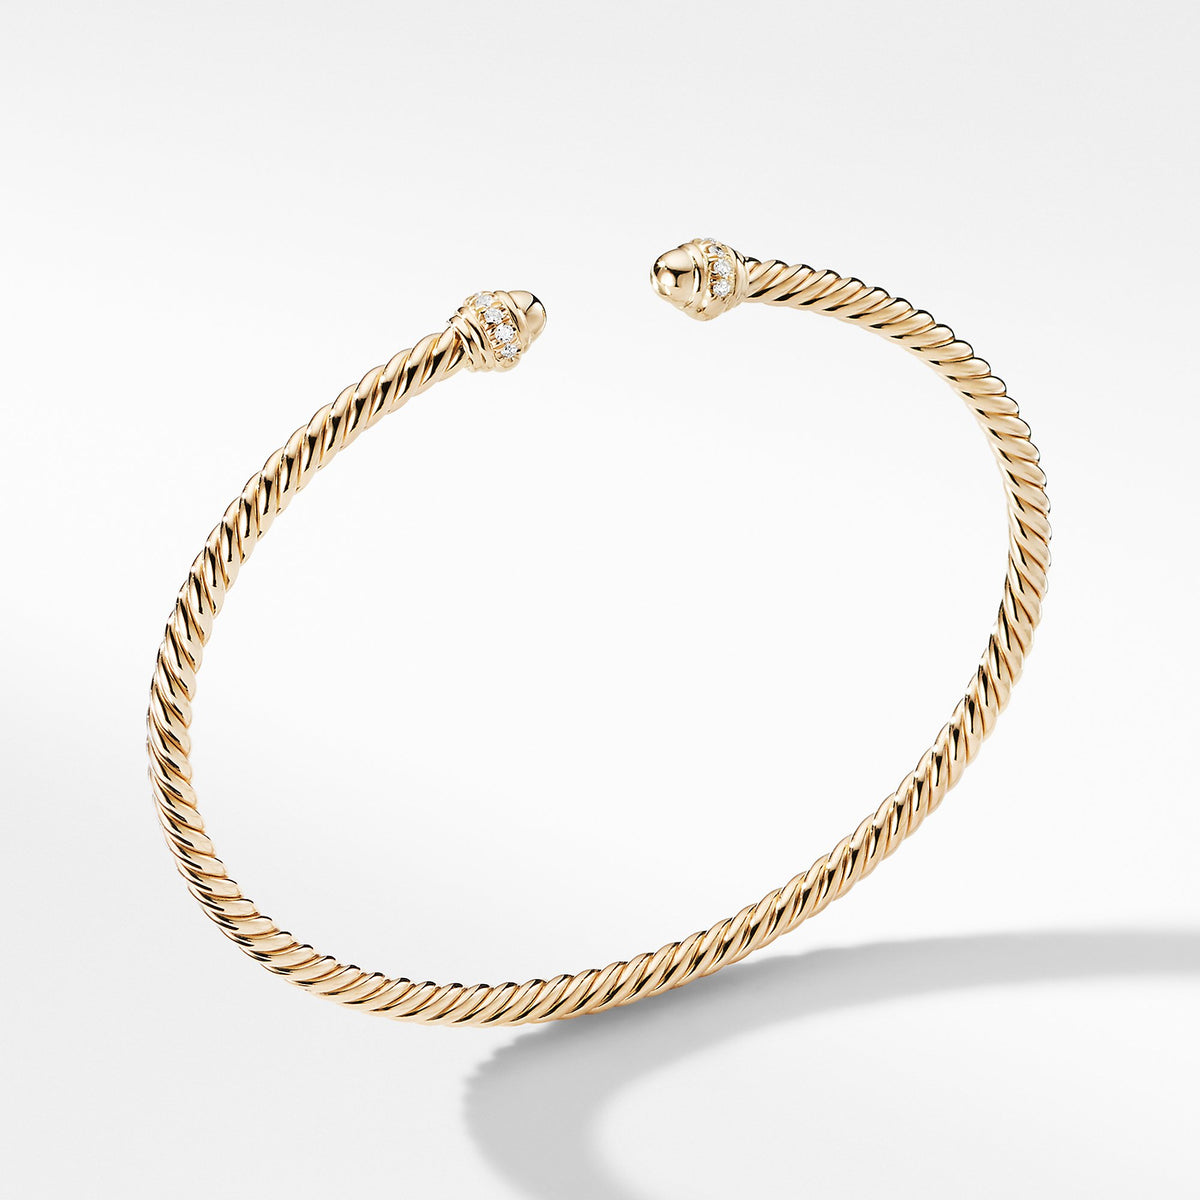 Cable Spira Bracelet in 18K Gold with Diamonds